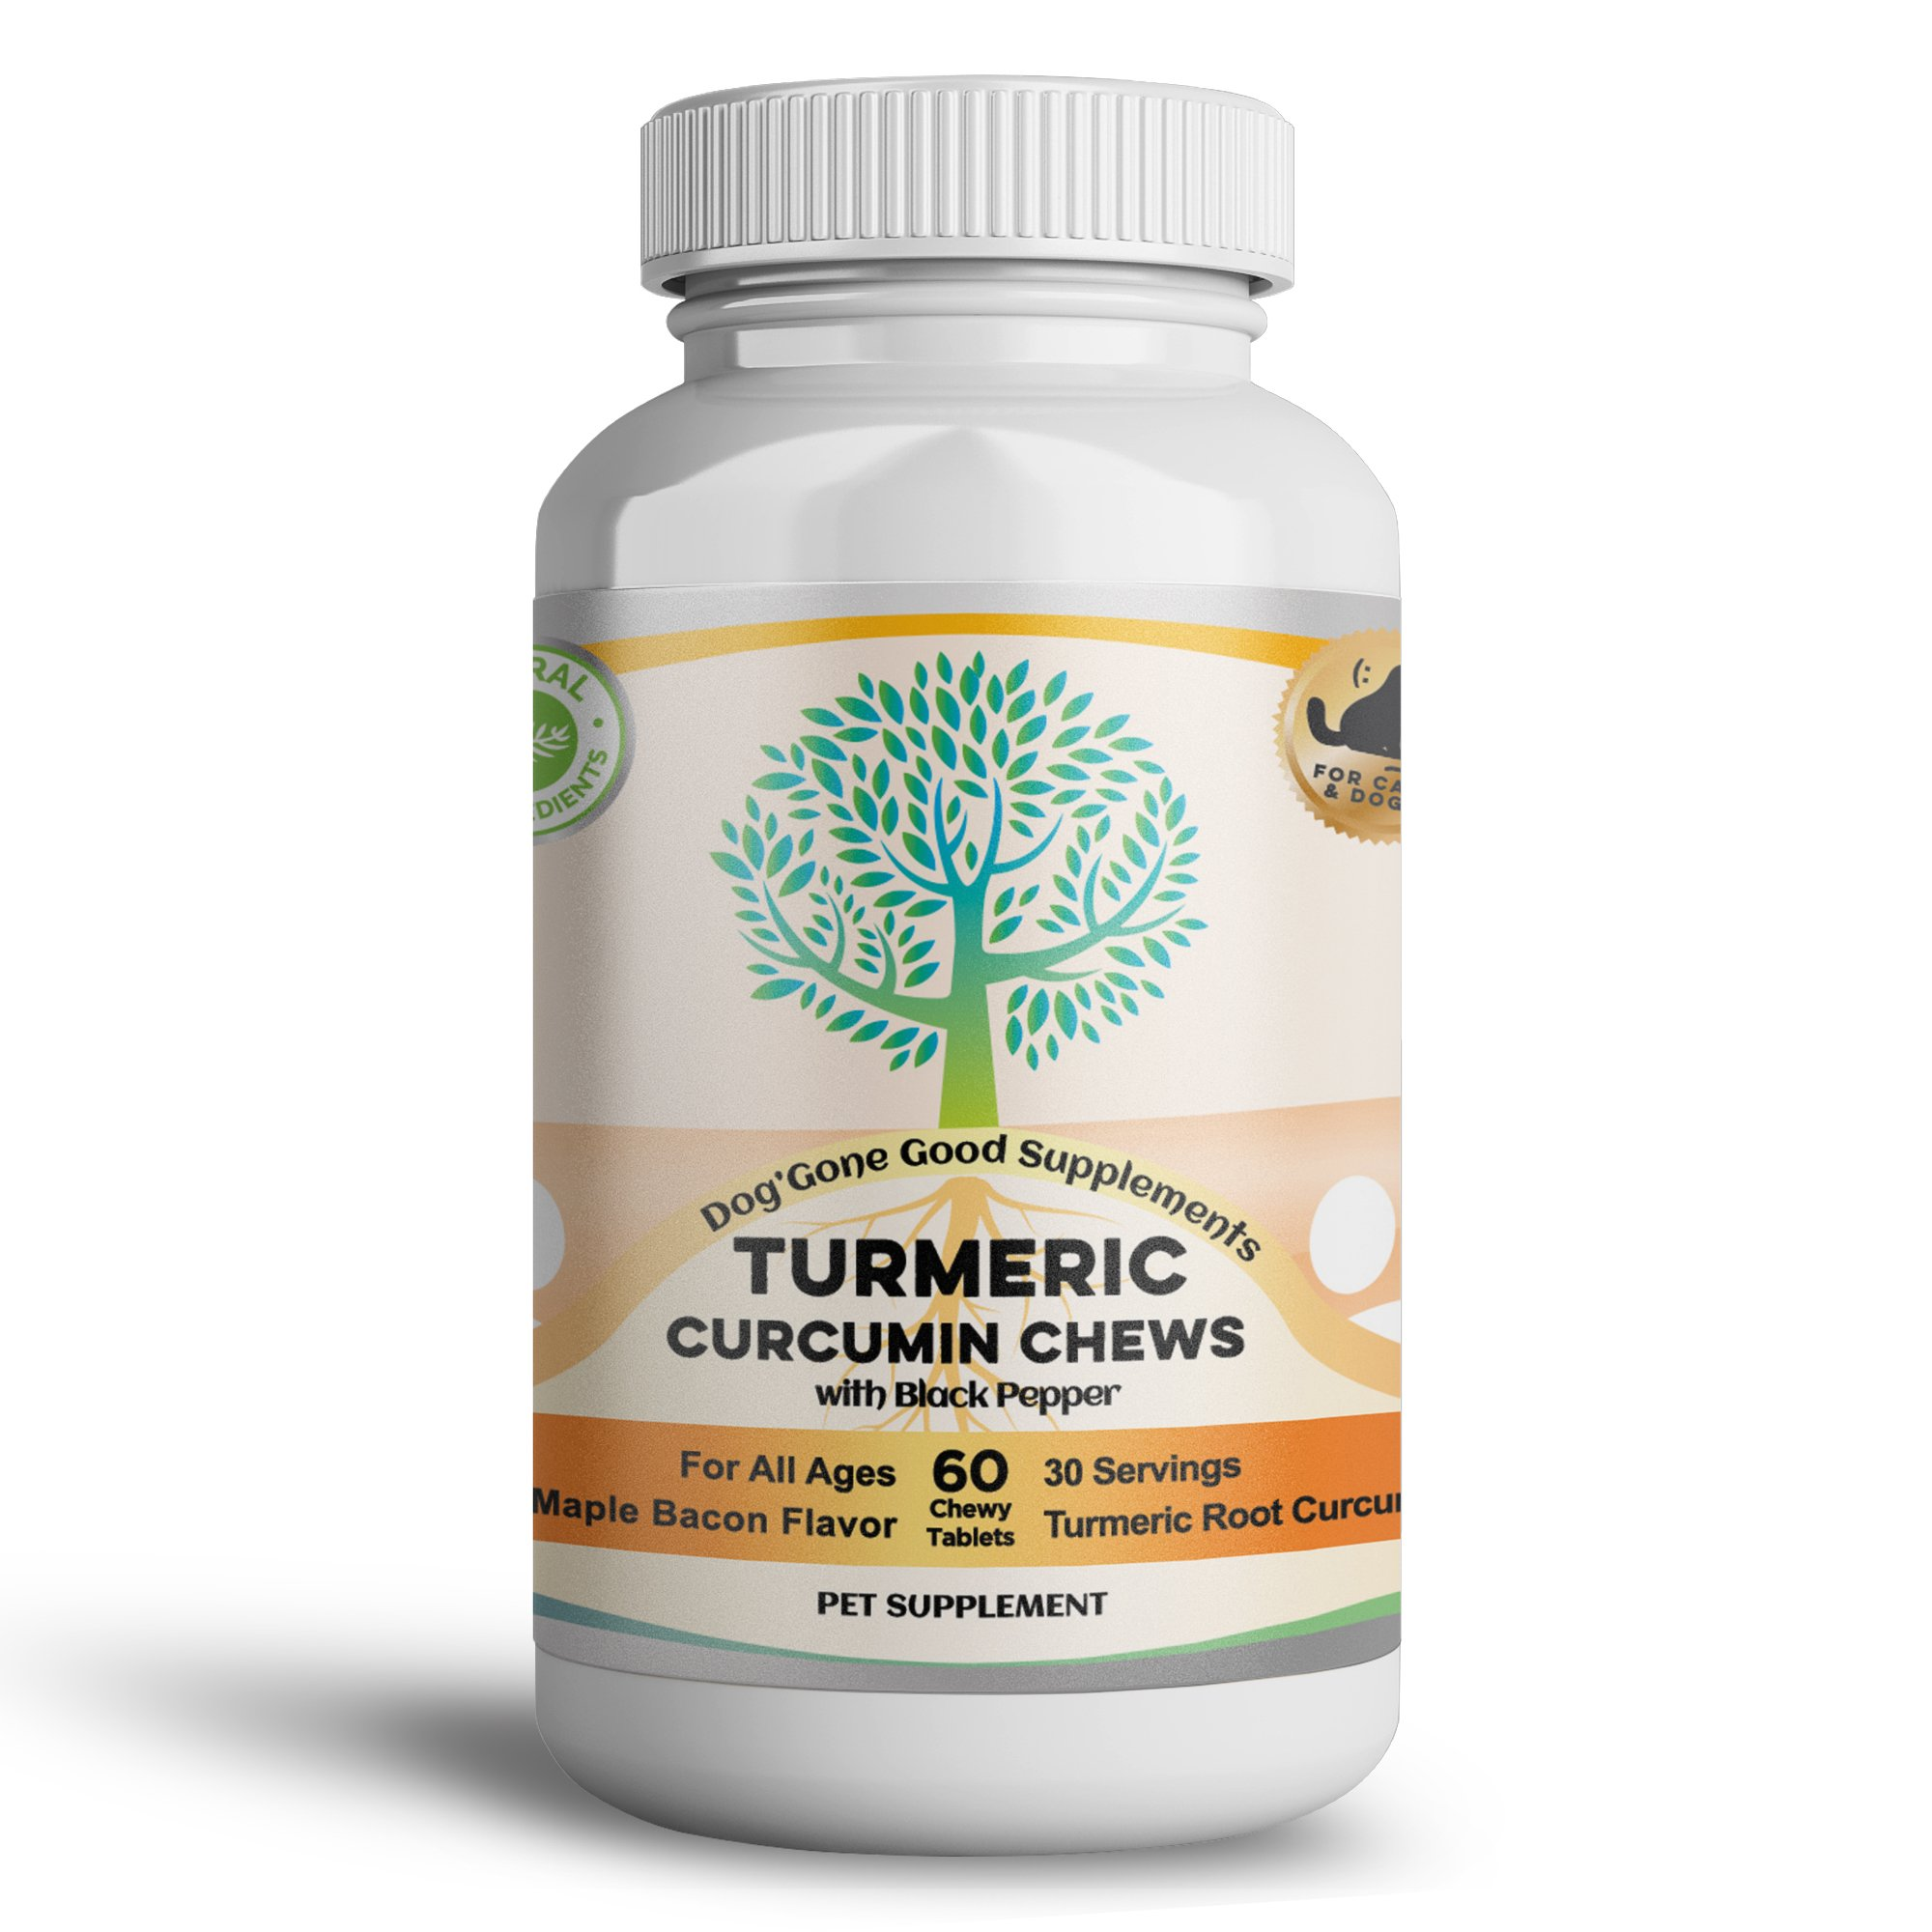 Turmeric Curcumin, Turmeric Curcumin Supplement, Organic Turmeric Curcumin Supplement - 60 Count Turmeric Curcumin Chews for Pet's by Dog' Gone Good Supplements - Digestive Health, Joint Health, Anti by Dog'gone Good Supplements